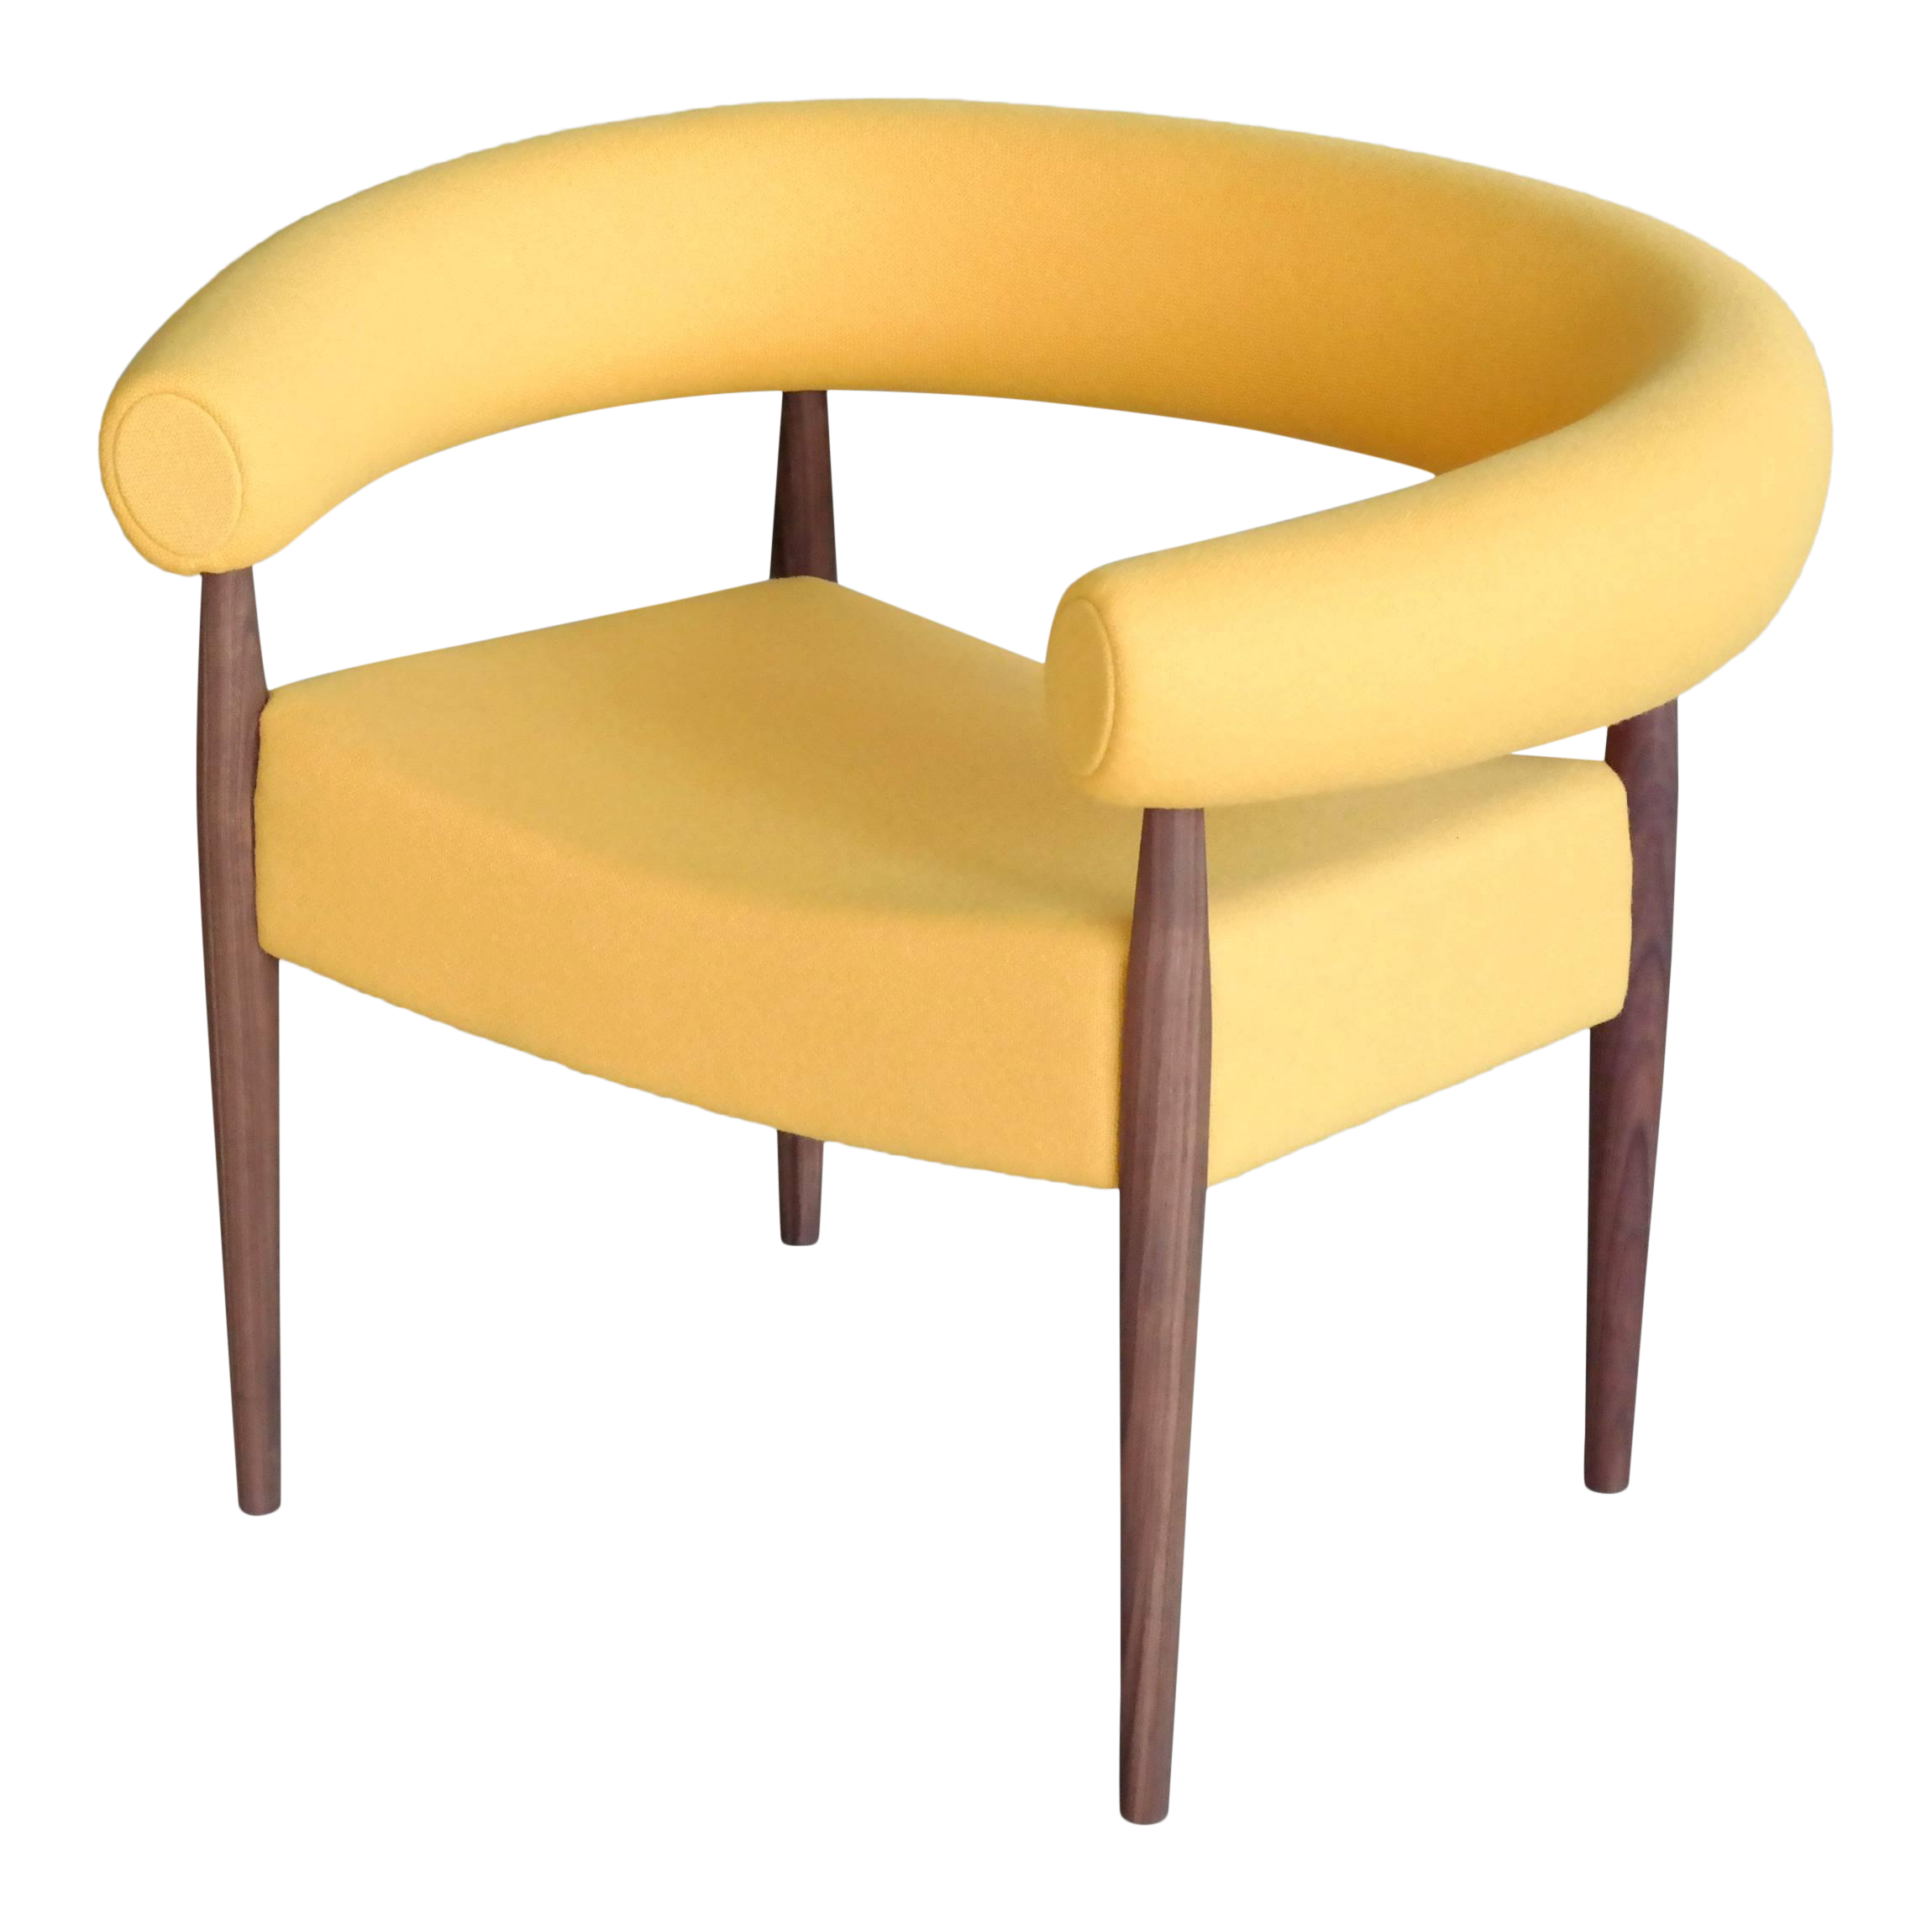 Gentil Nanna Ditzel Ring Chair In Walnut And Wool For Getama For Sale